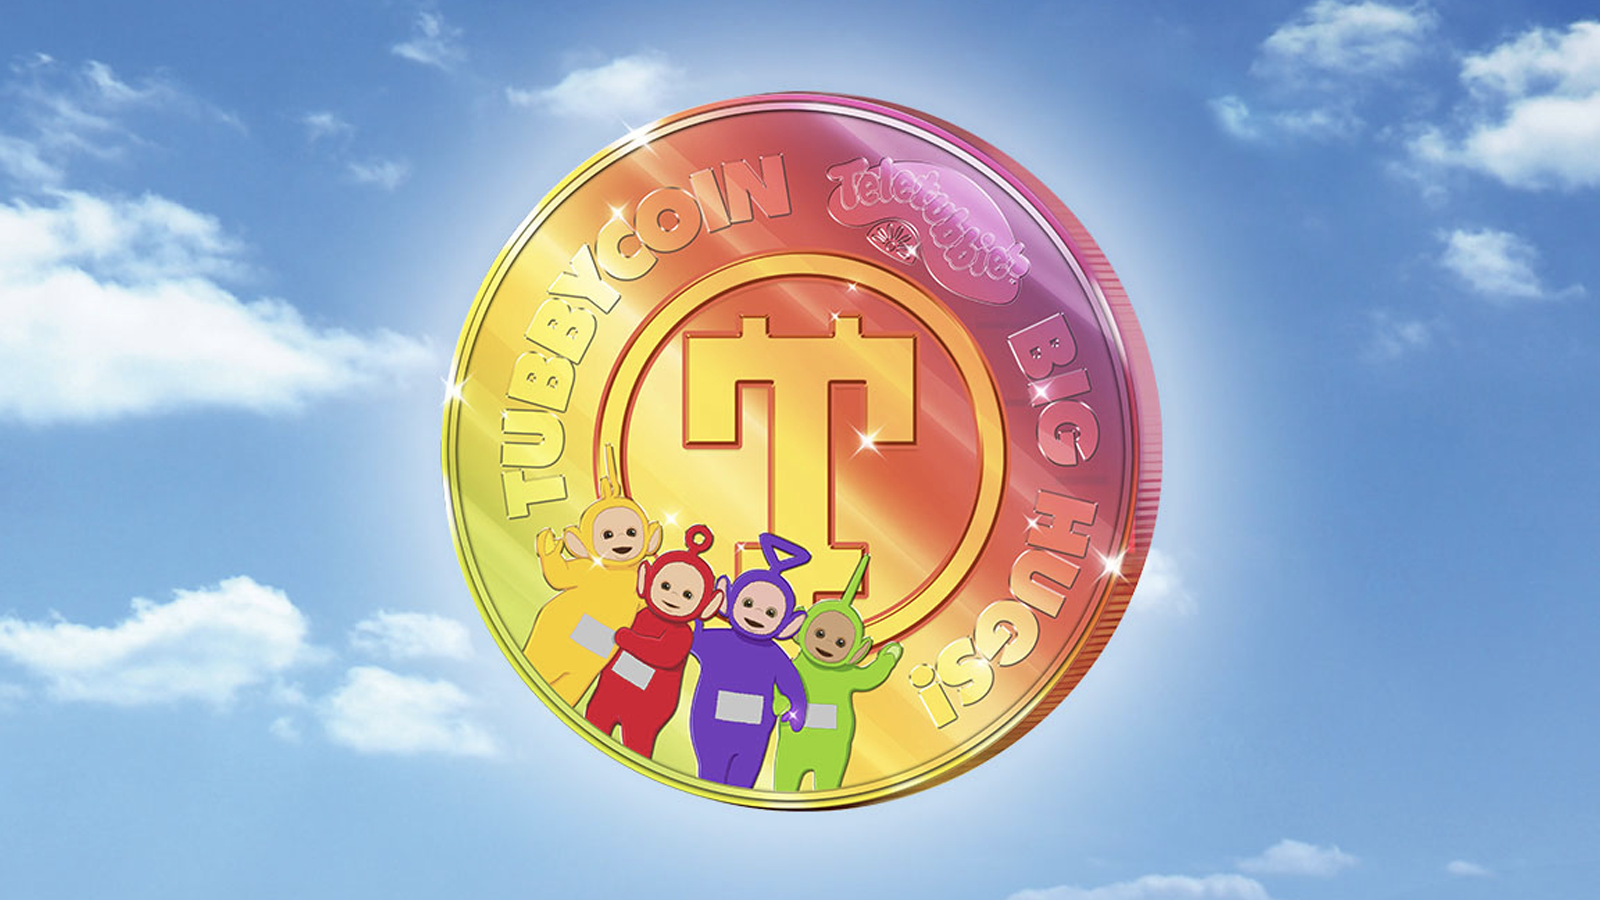 An illustration of the TubbyCoin